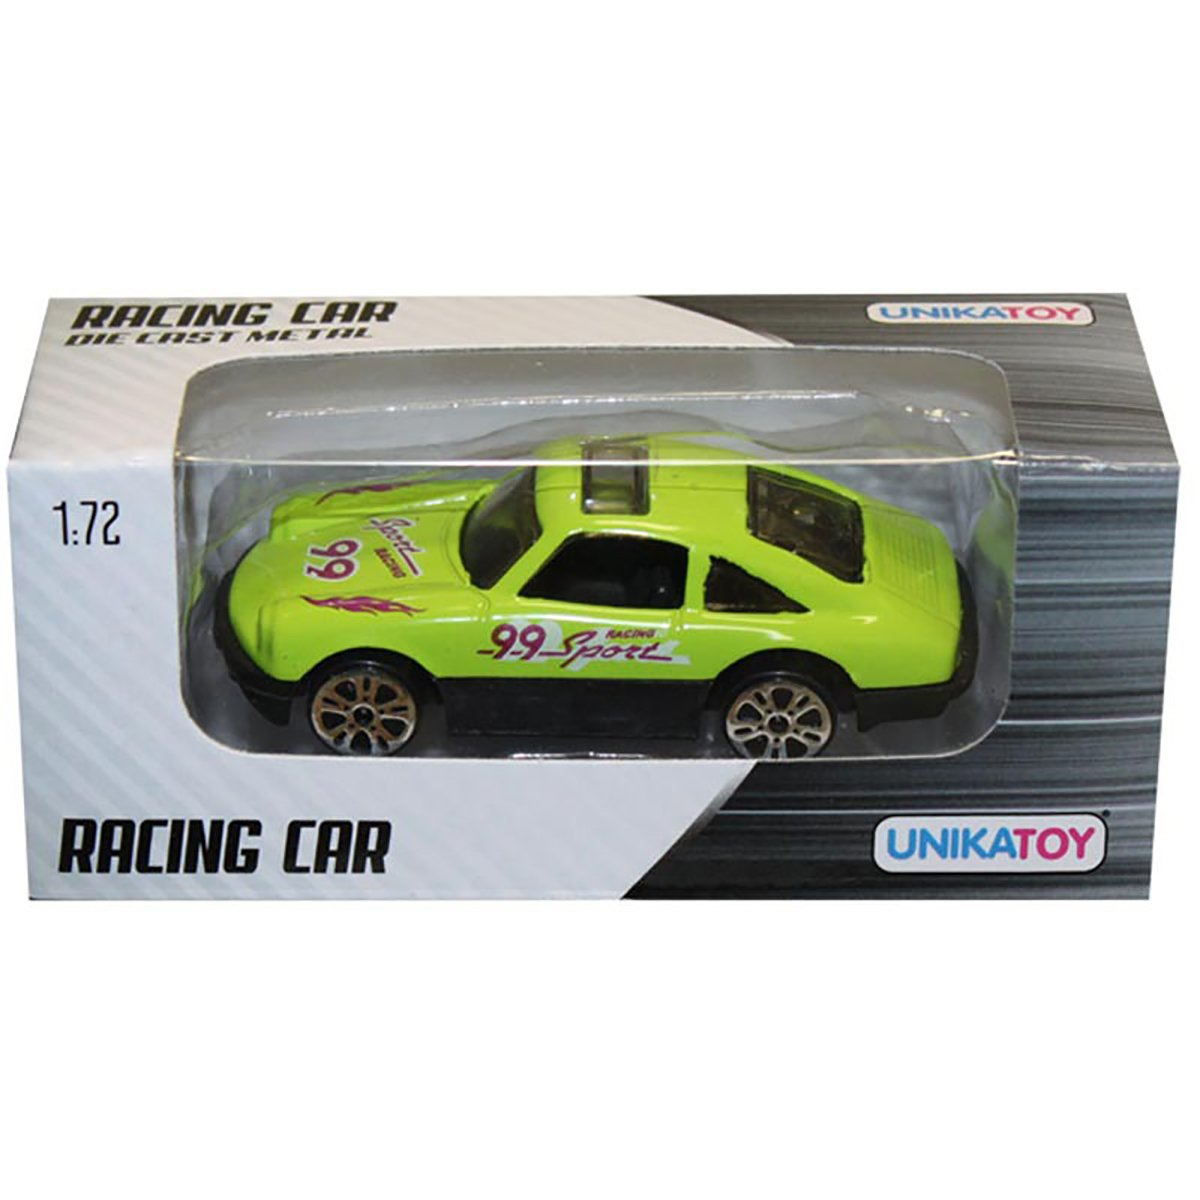 Masinuta din metal Racing Car Unika Toy, 1:72